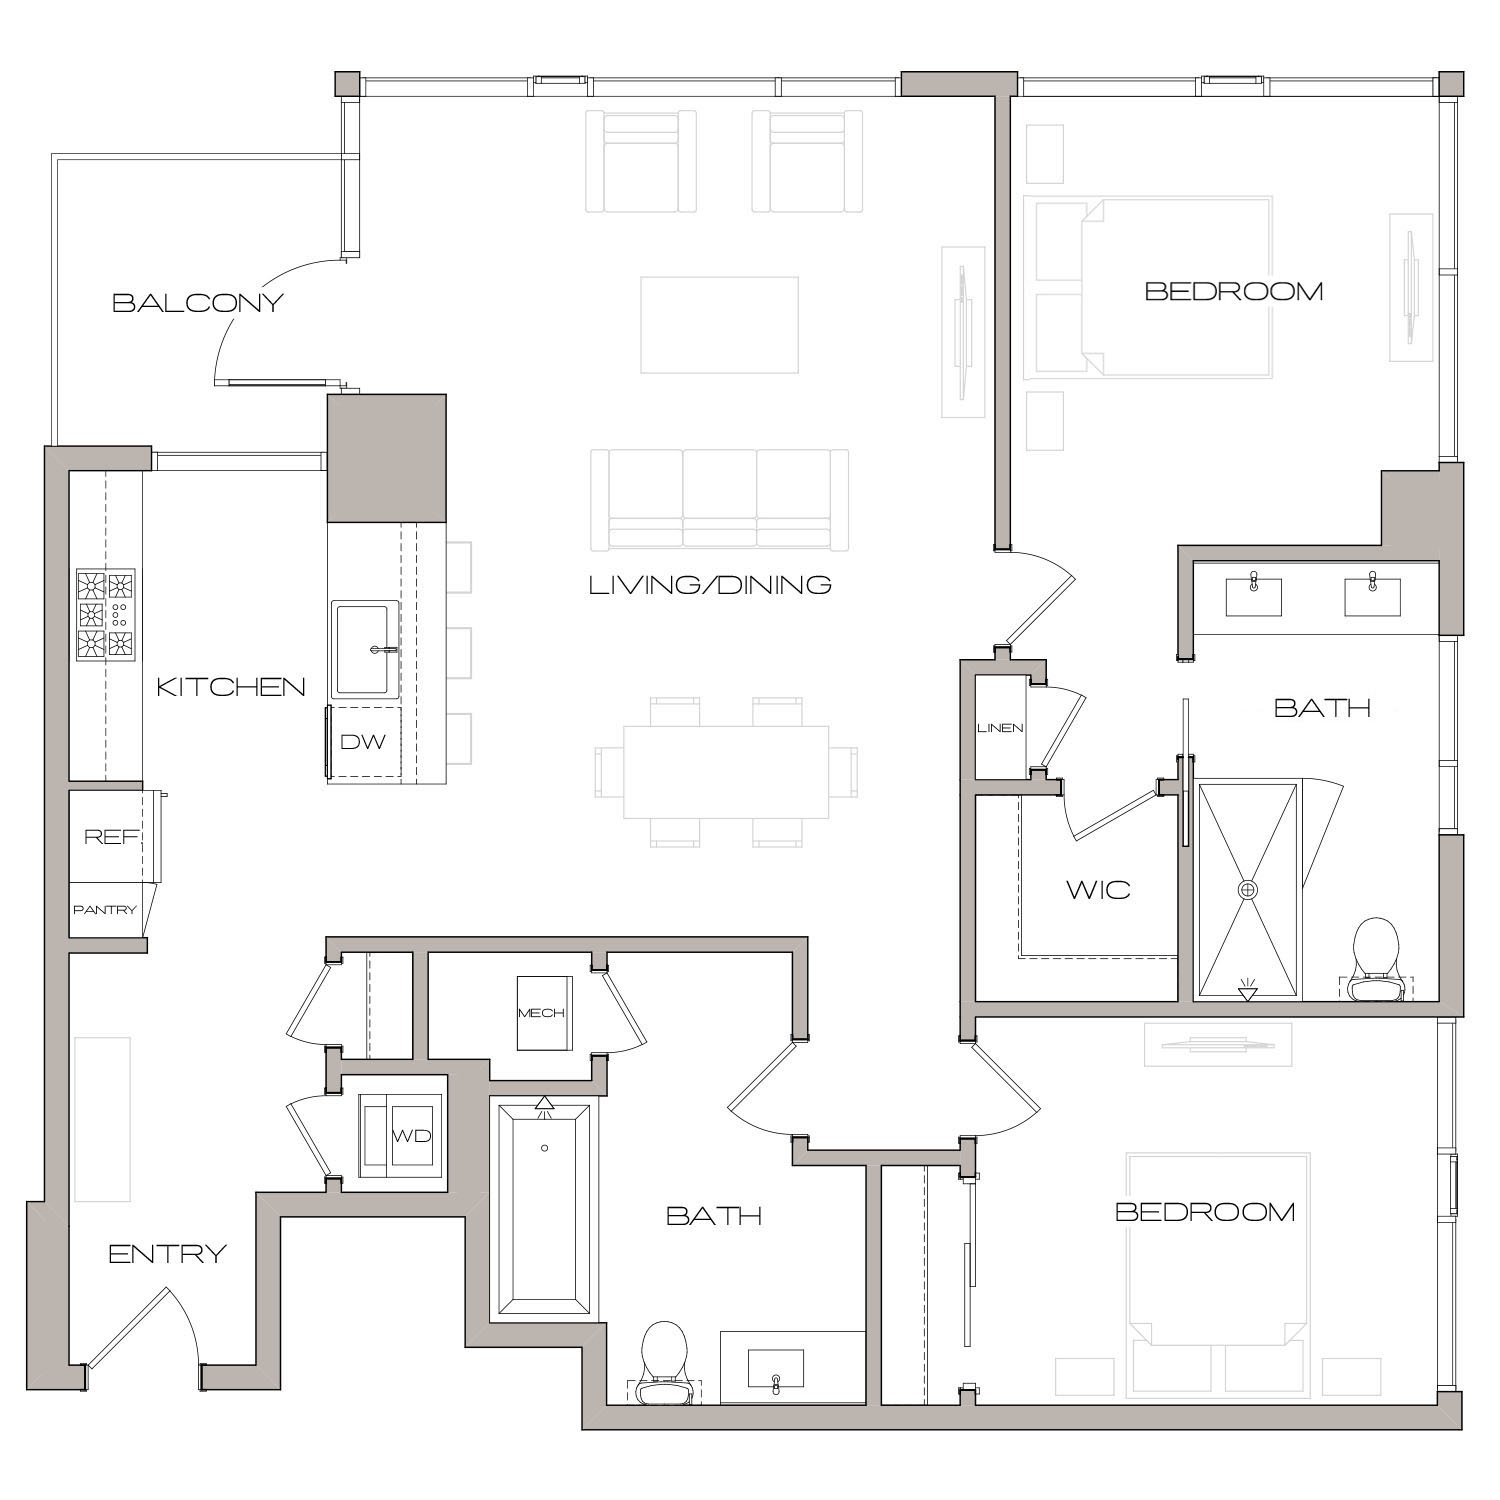 B 3 floor plan diagram. Two bedrooms, two bathrooms, an open kitchen and living area, a balcony, and a washer dryer.